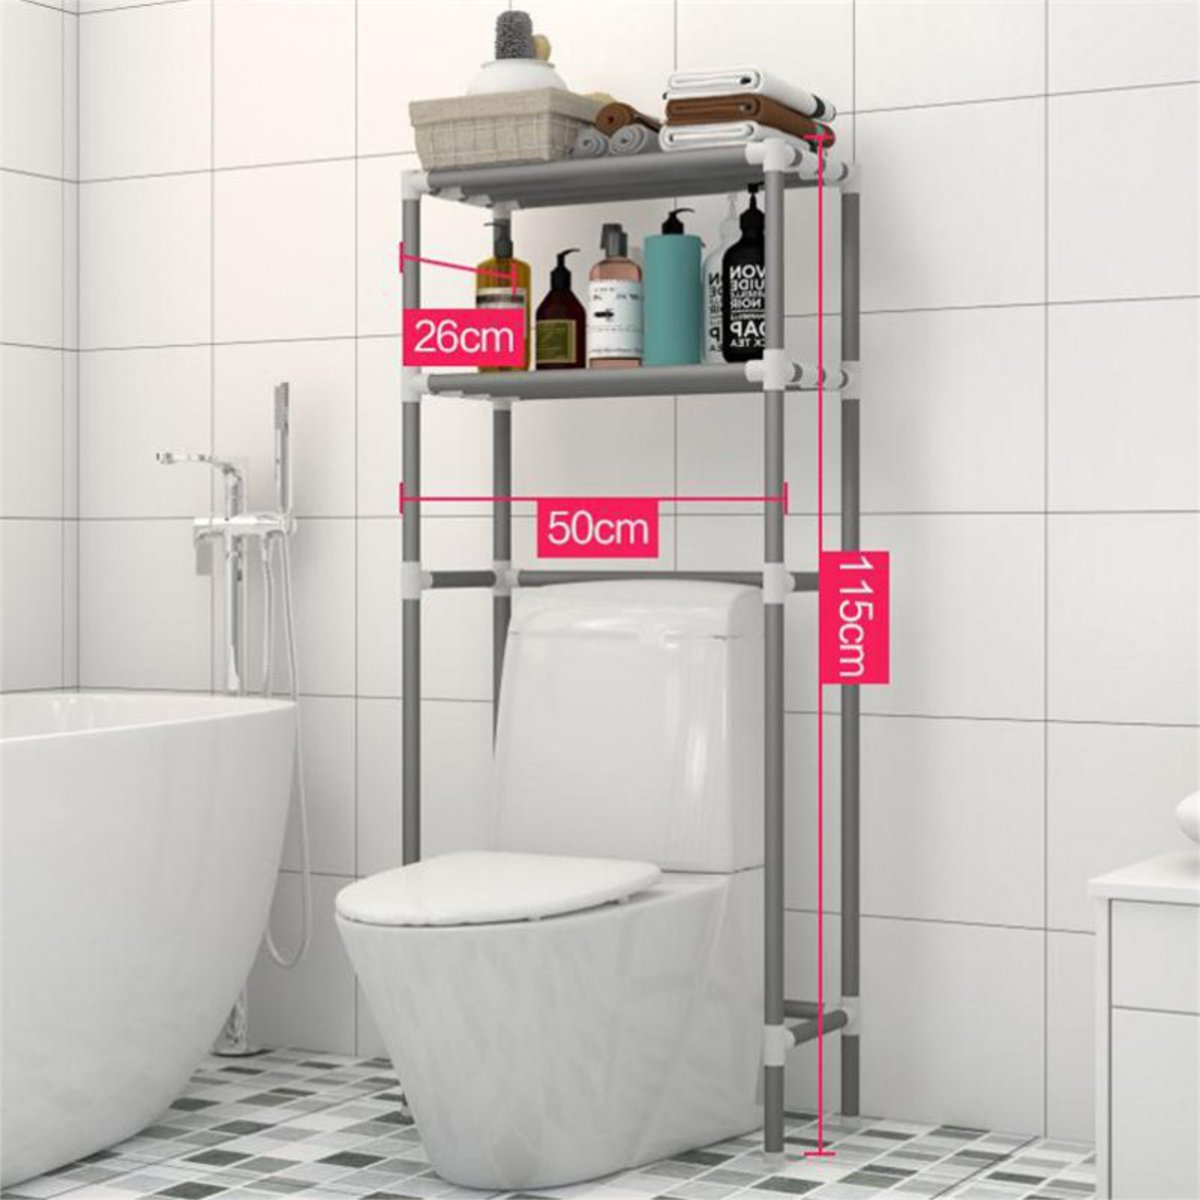 2 Tiers Over Toilet Storage Rack Holder Bathroom Space Saver Towel Shampoo Organizer Holder Bathroom Storage Shelves 50x26x115cm